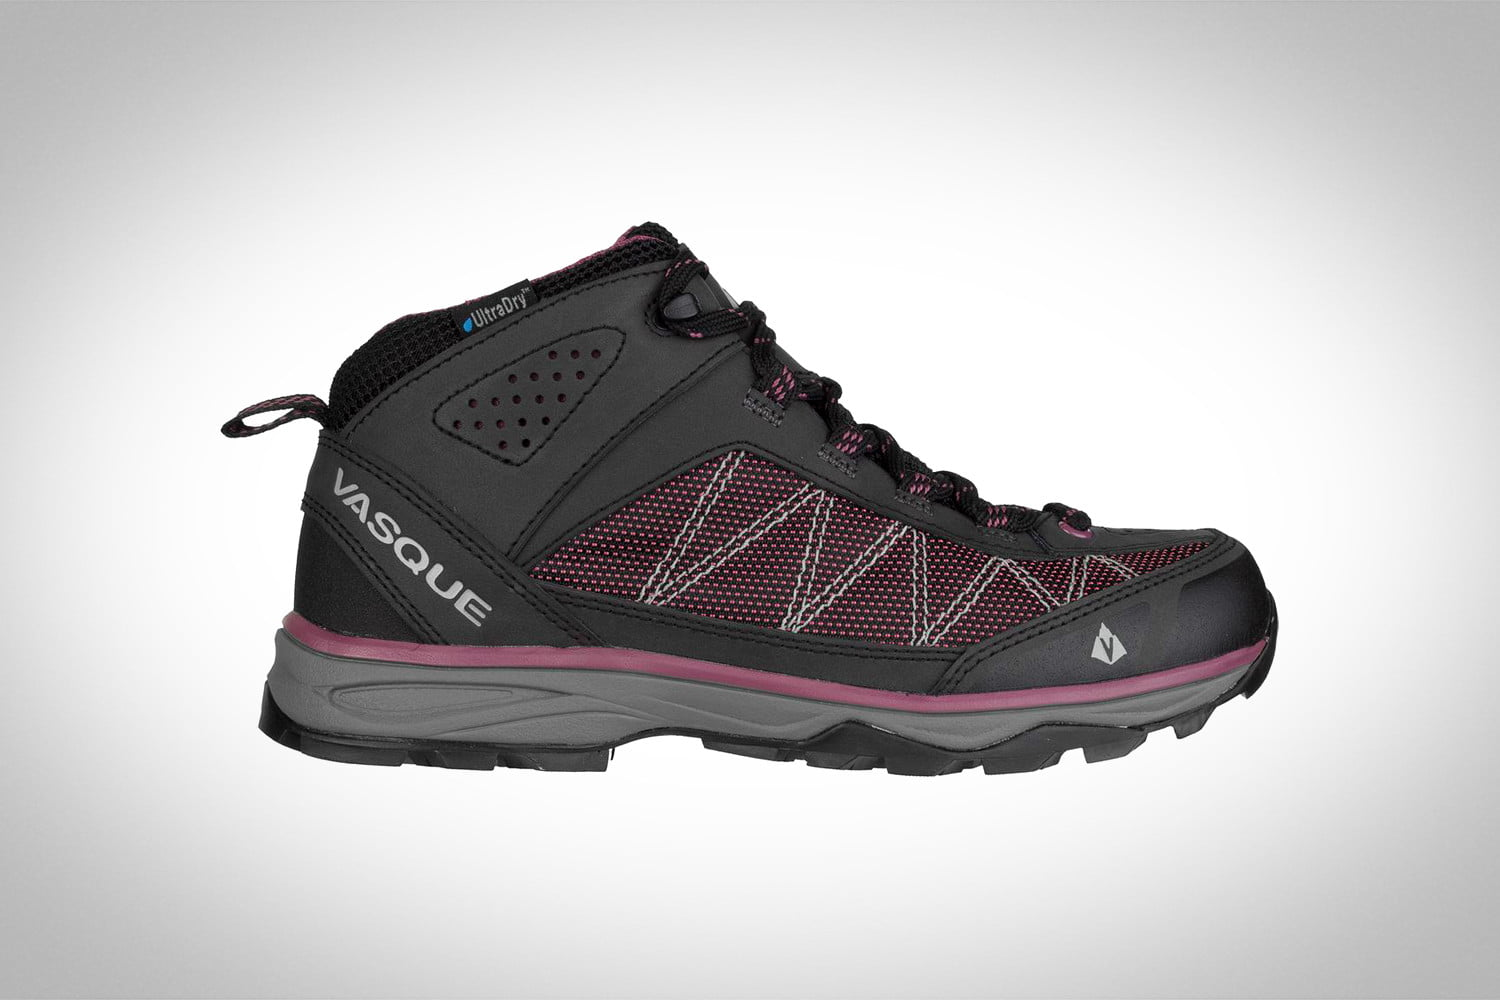 fe875b7e6f60 An outstanding choice for the moderate hiker